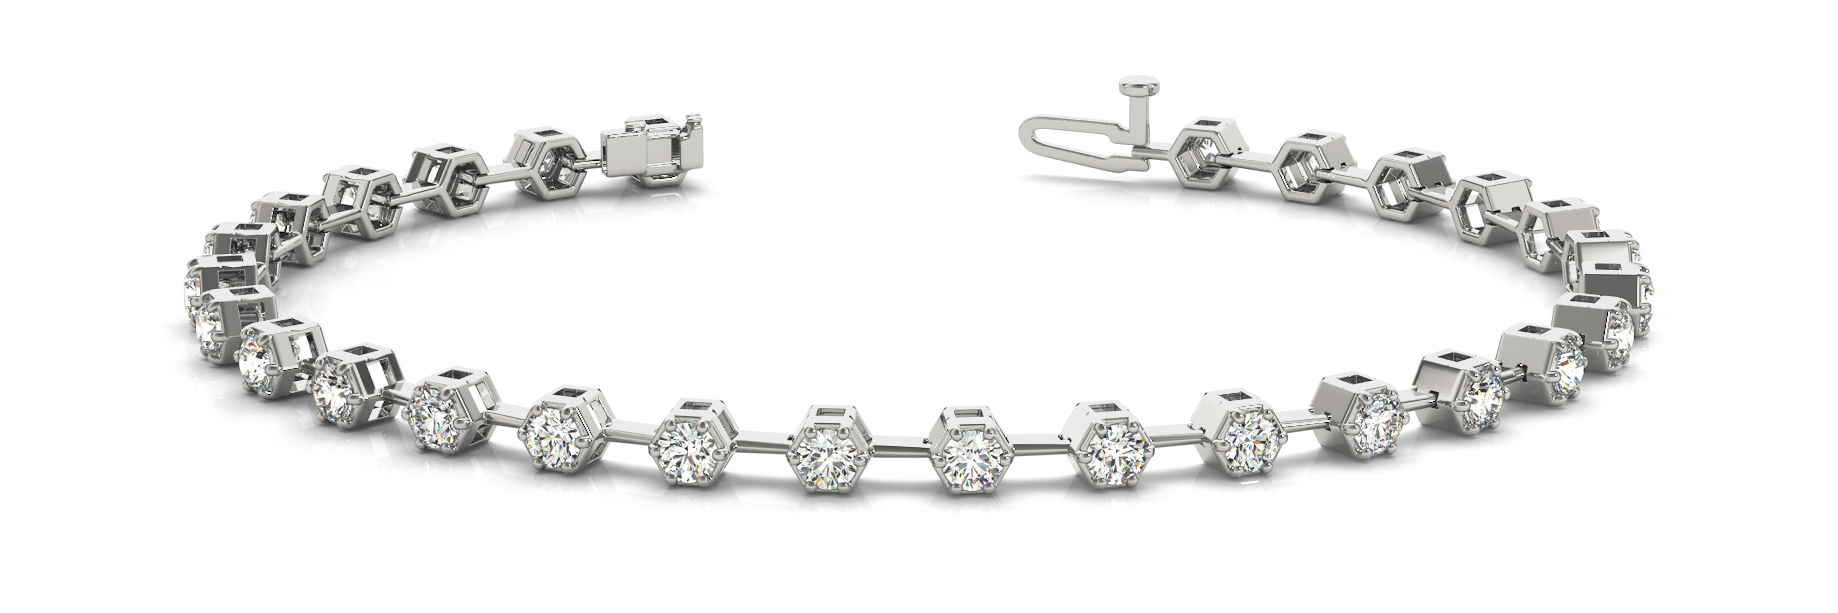 2.52 Carat Round Diamond Hexagon Bracelet